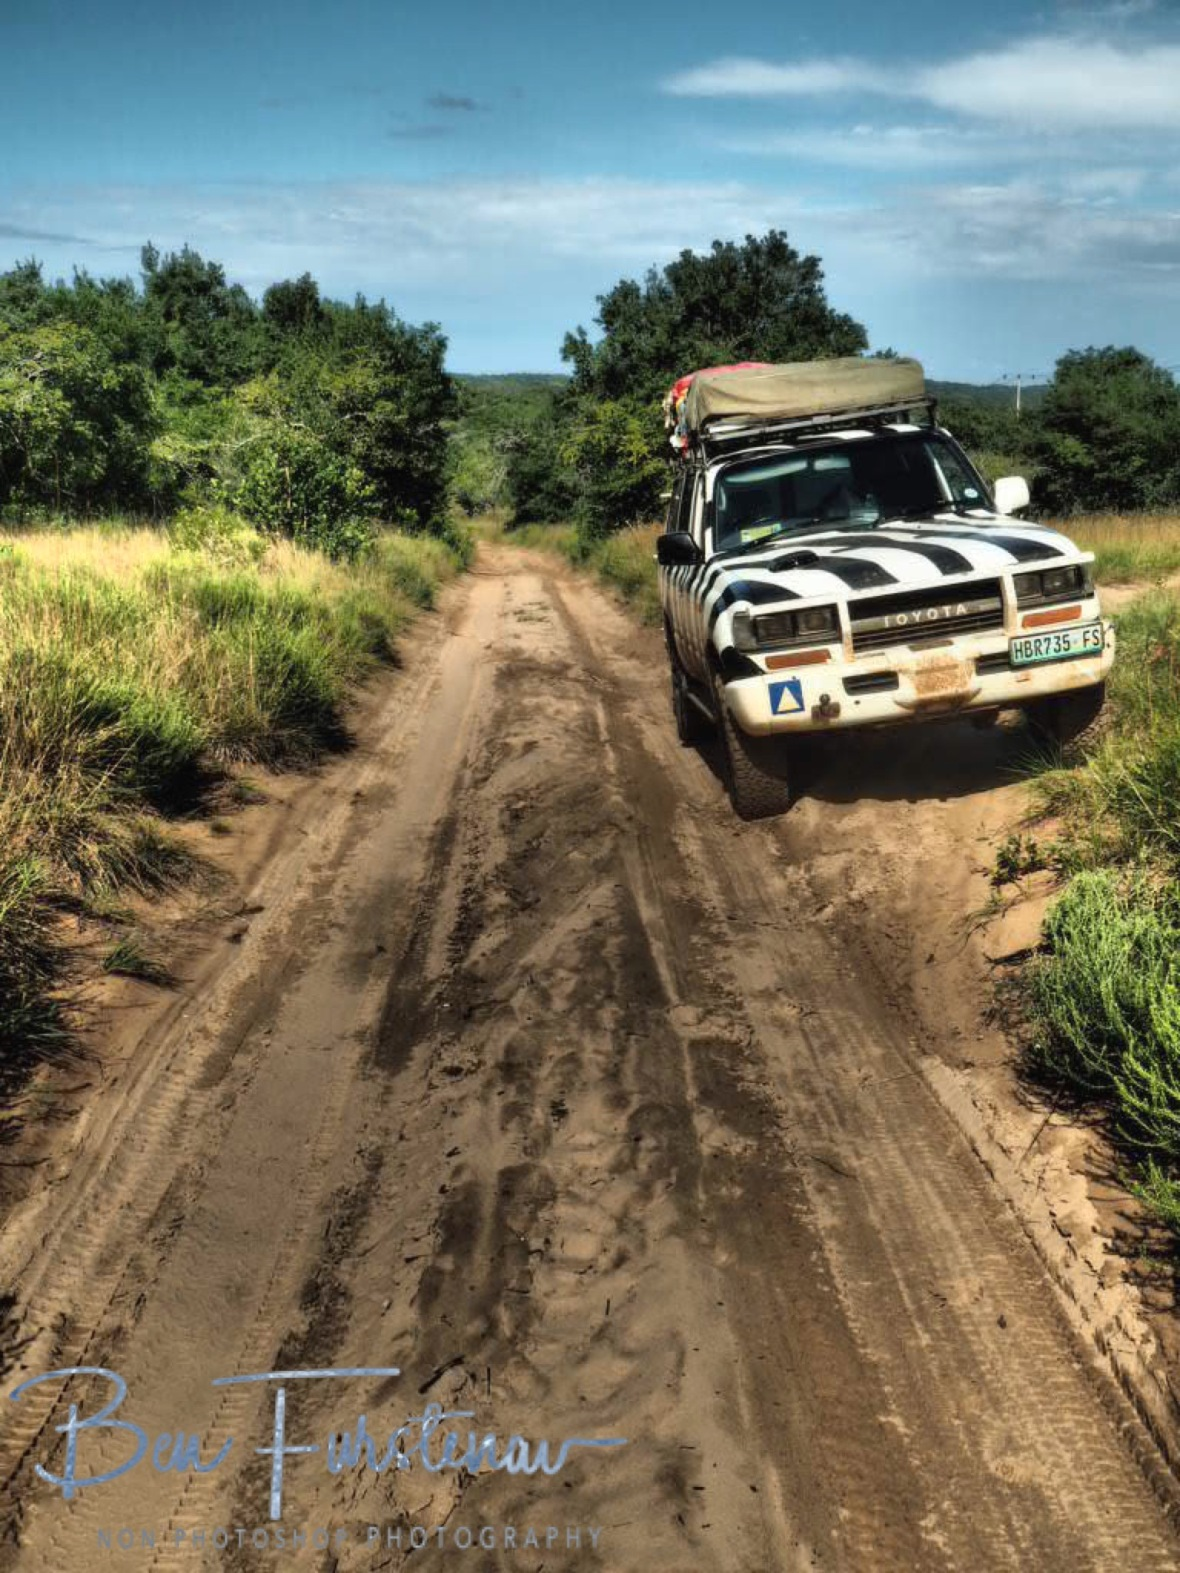 Sand 4x4 tracks, enjoyed by both of us, Machangulo Peninsula